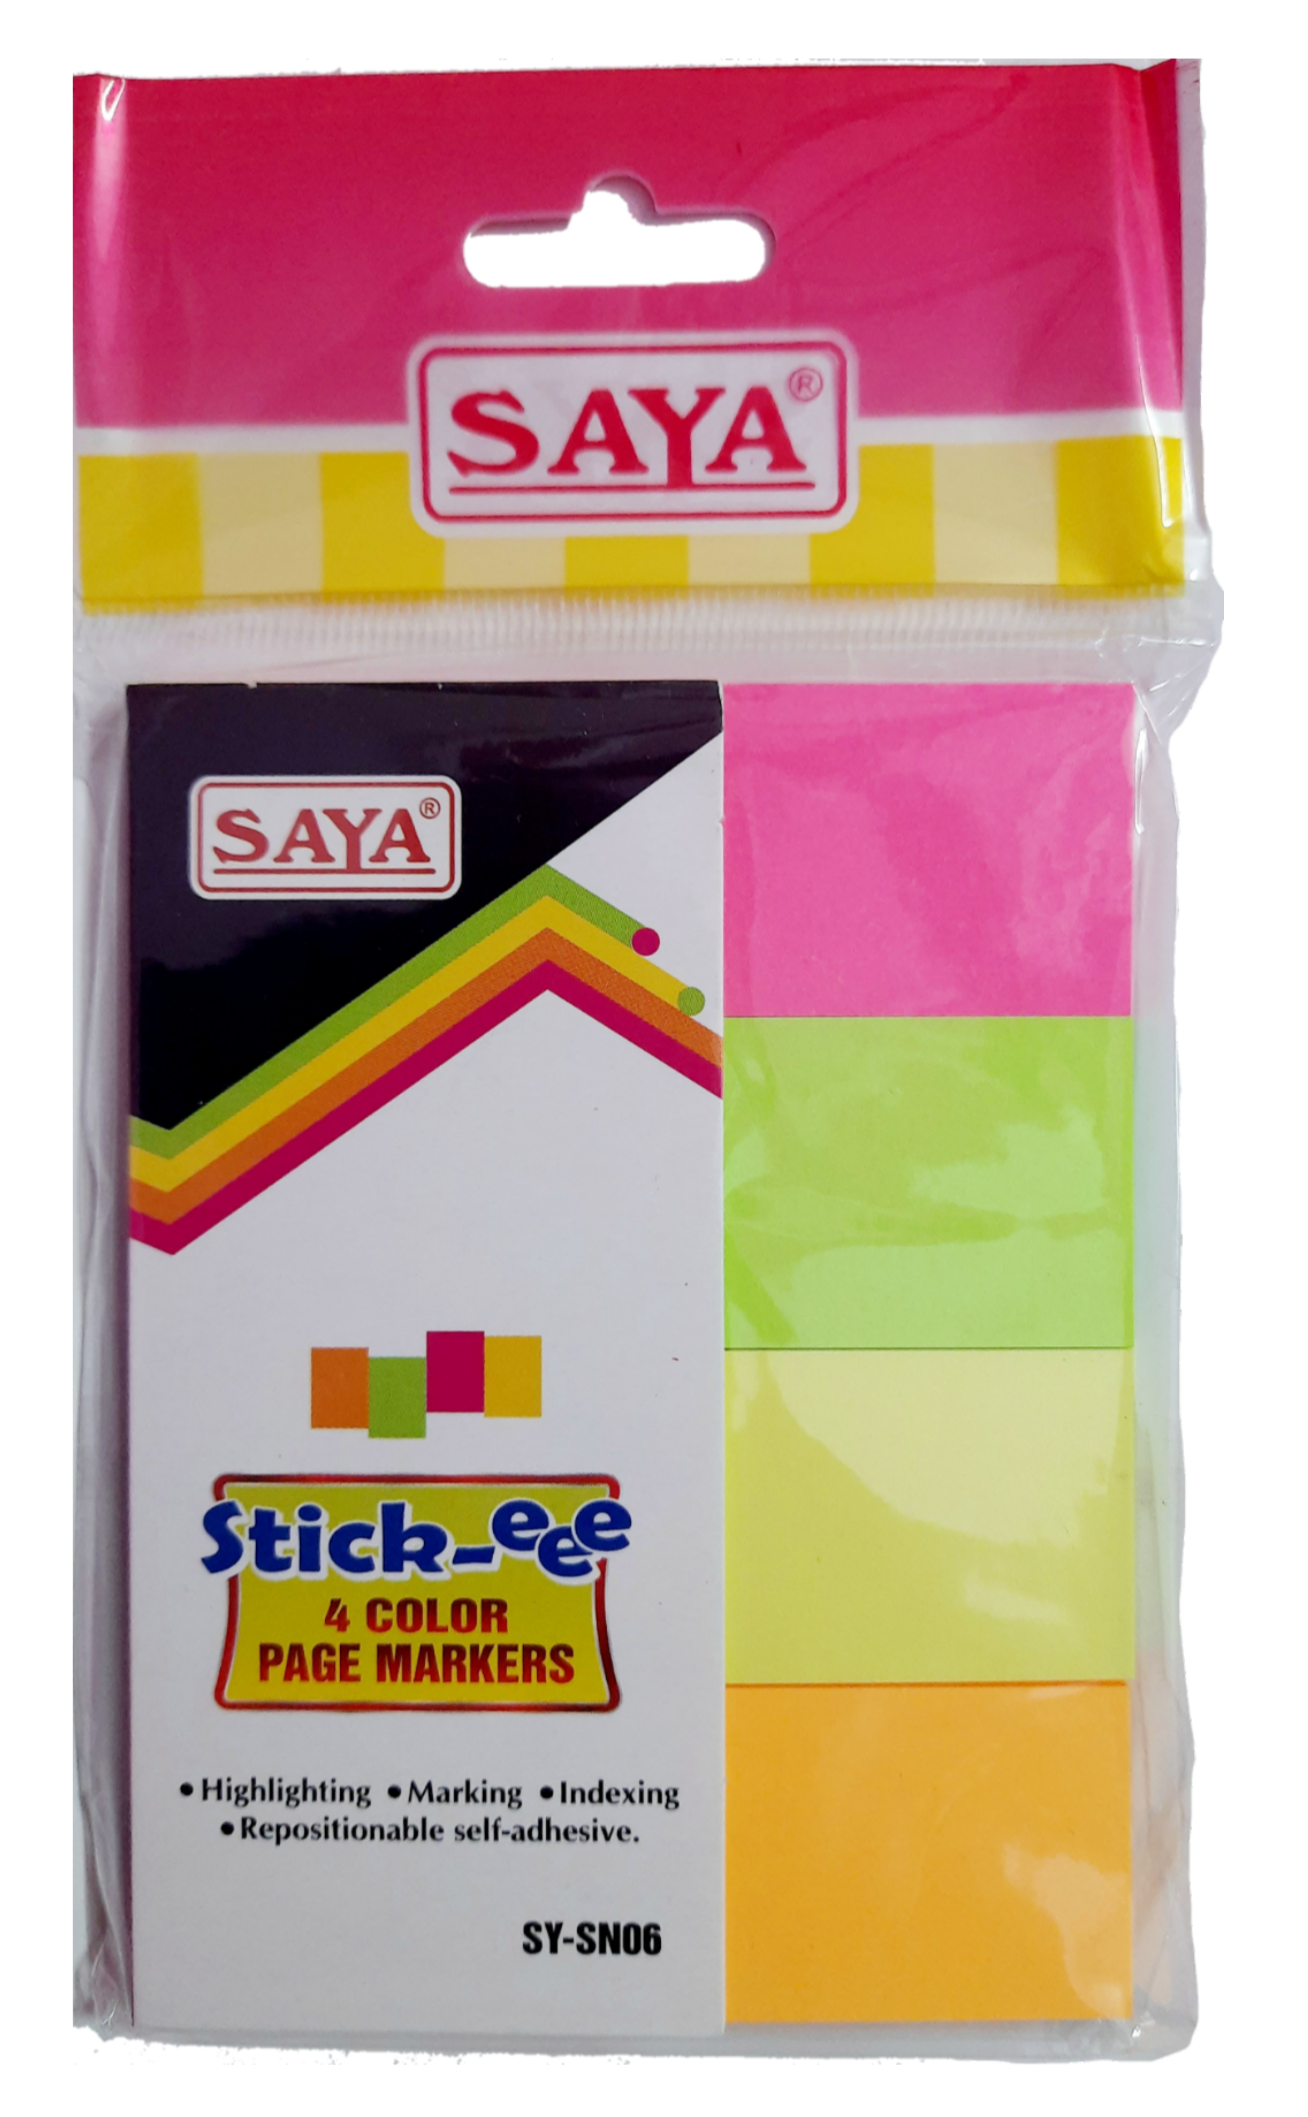 Saya Stick-eee Note Pads, 200 Sheets ,75X75mm, 4 Tabs, Pack of 1